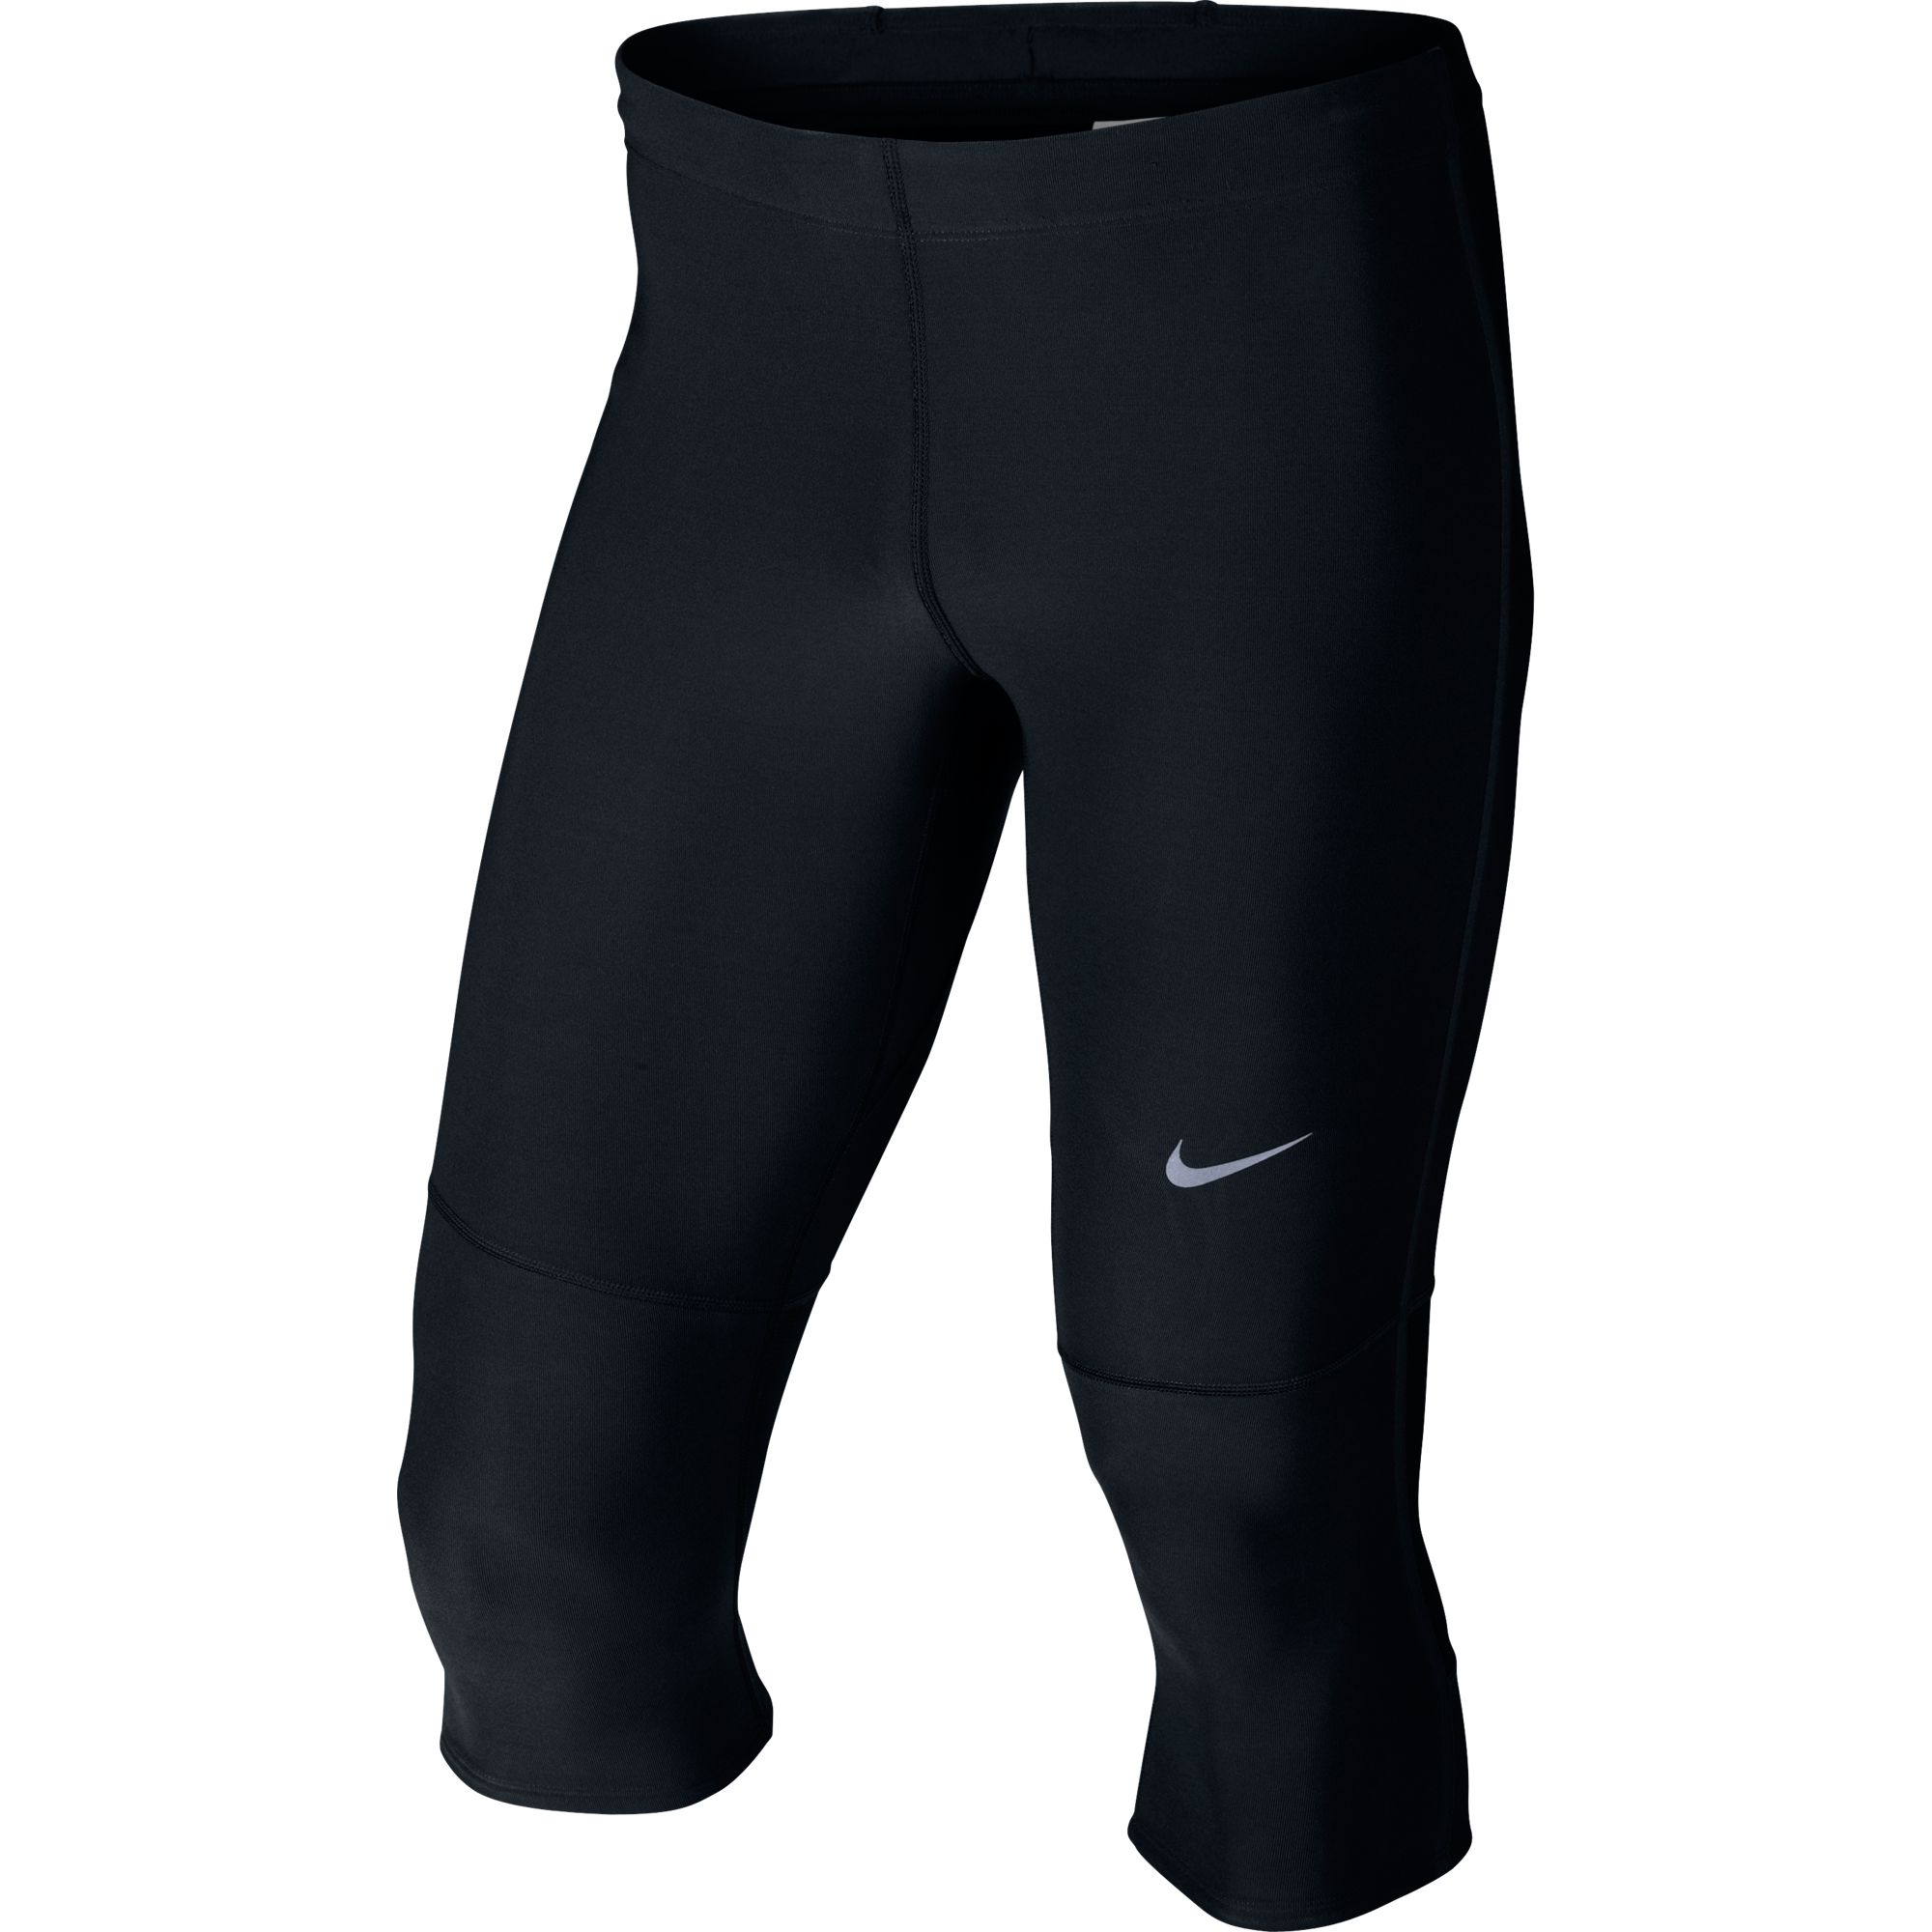 Wiggle España | Mallas piratas Nike Tech Otoño14 | Internal